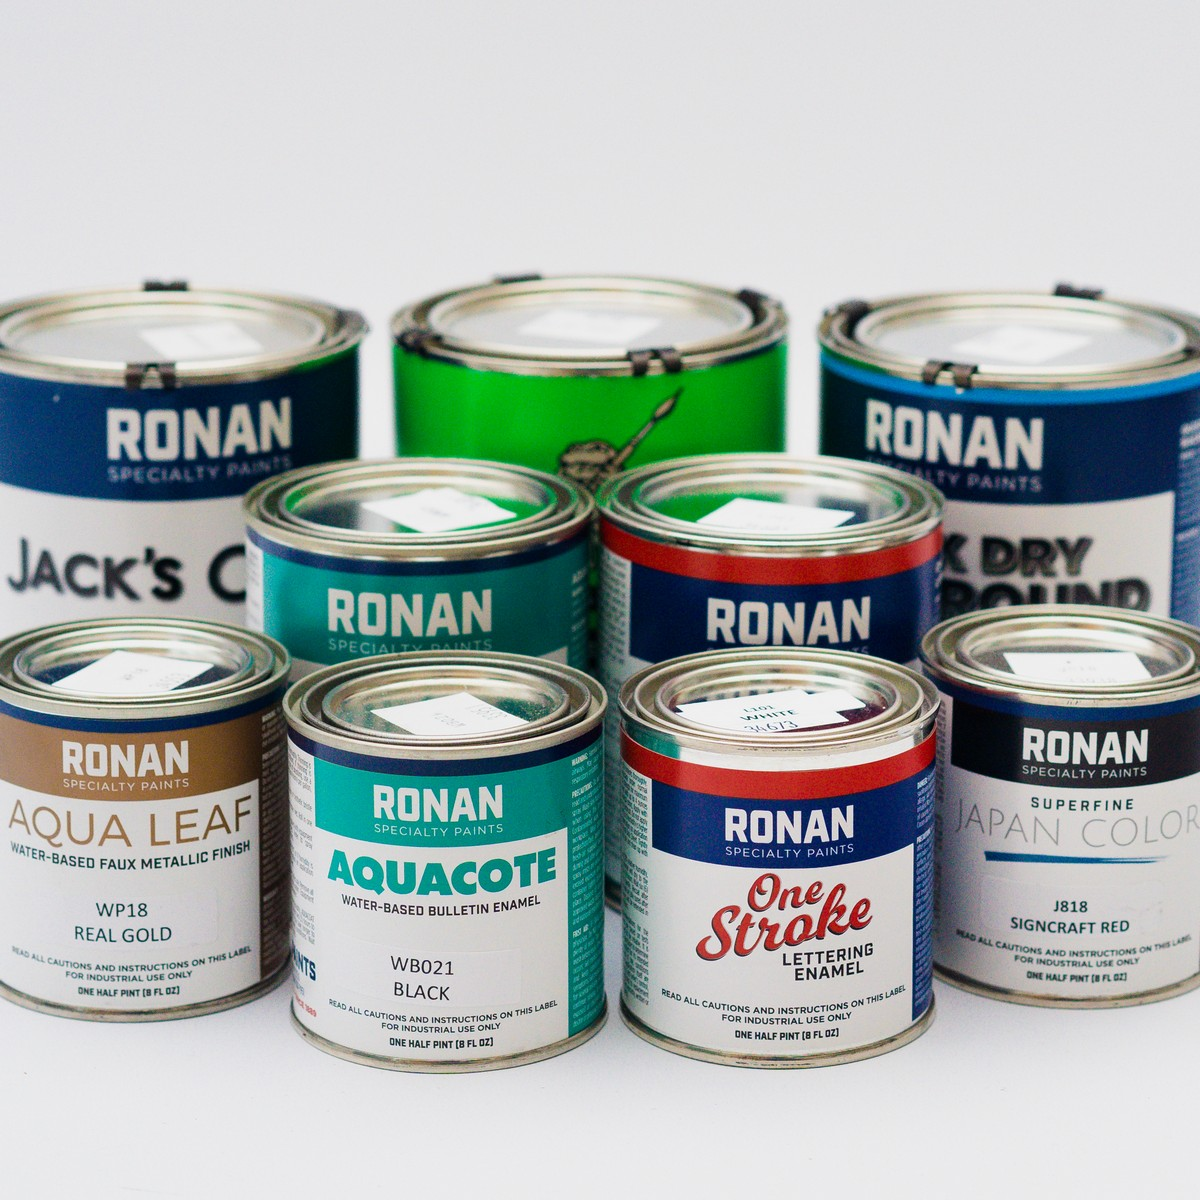 Ronan Specialty Paints in the UK and Europe